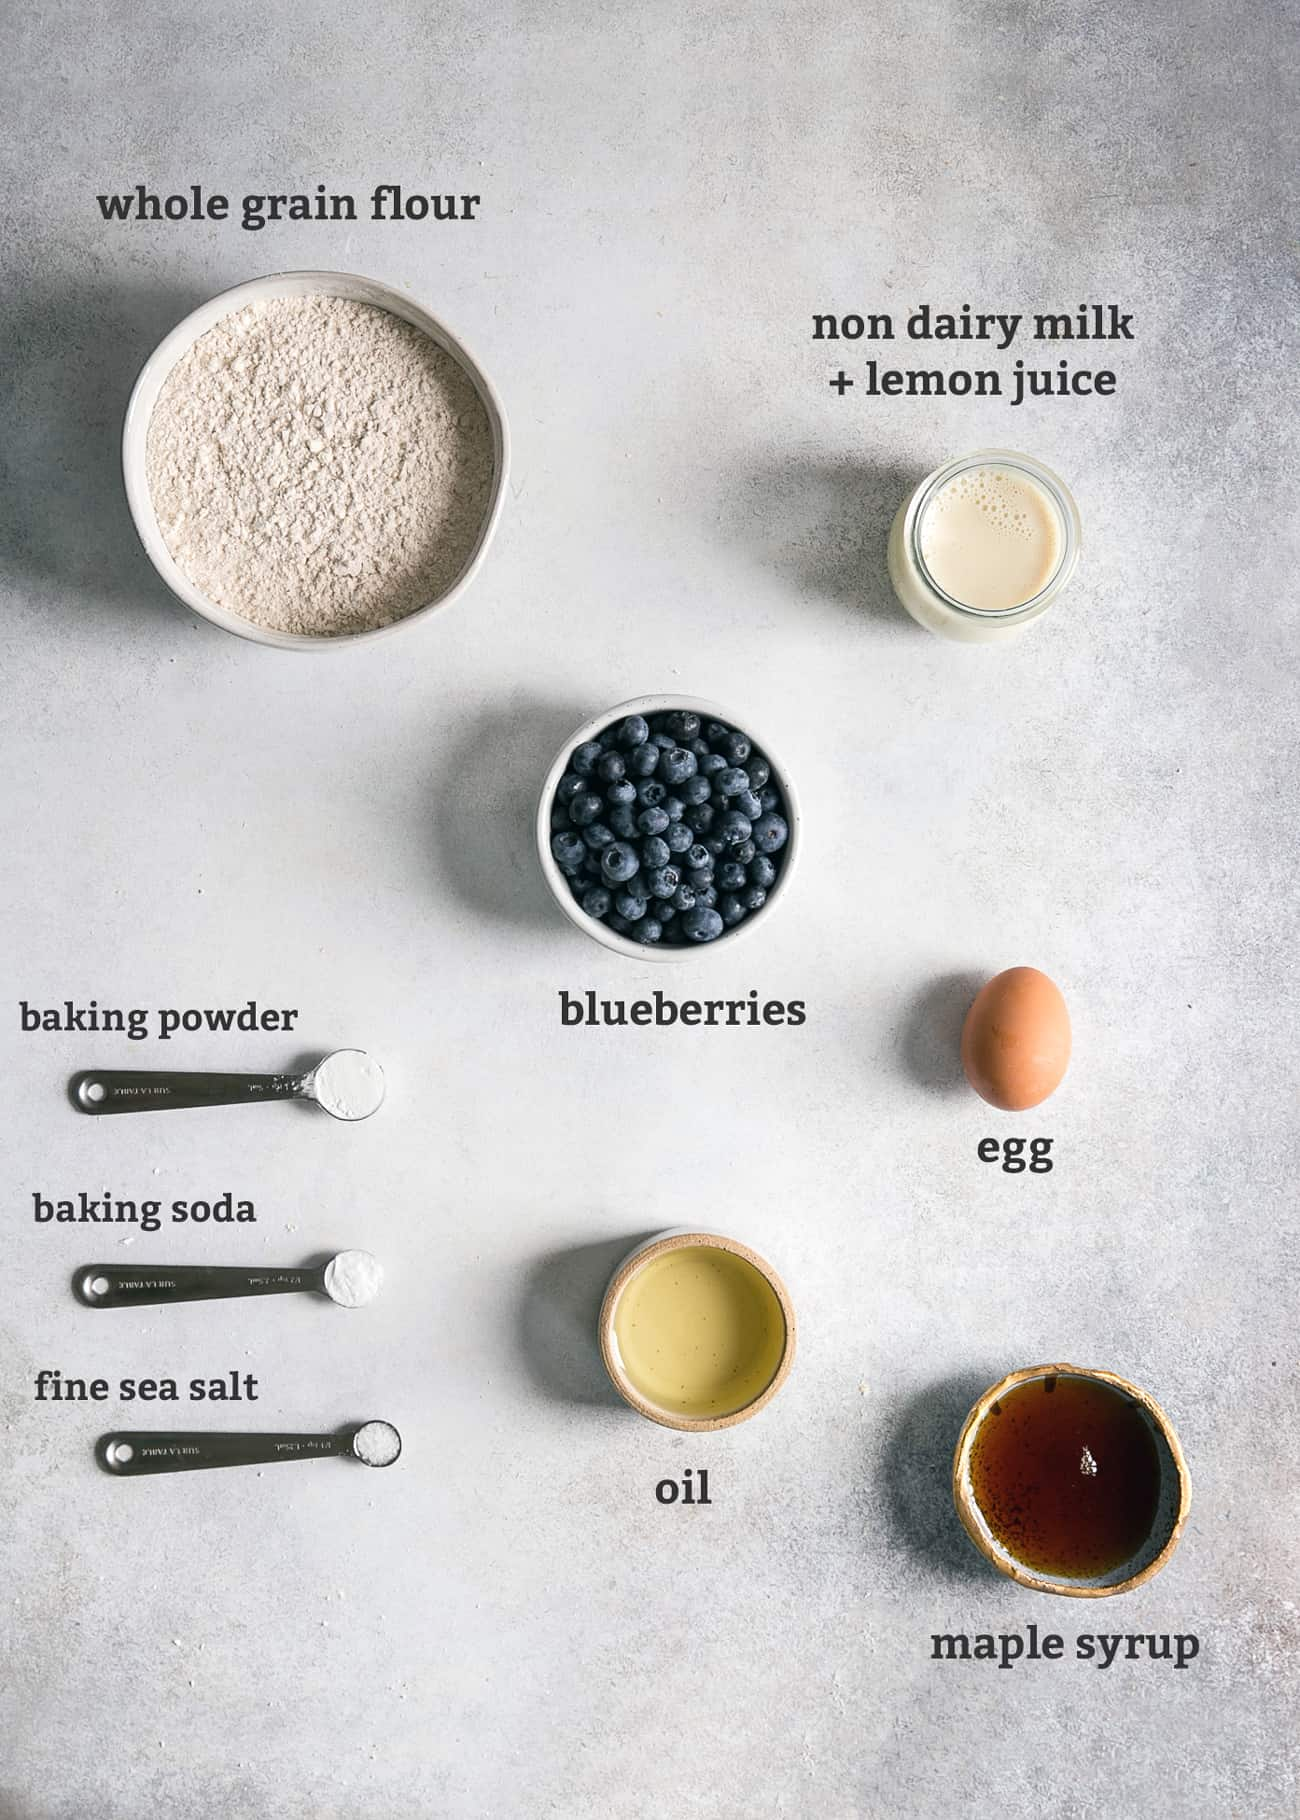 ingredients in bowls and spoons on board; text labeled: whole grain flour, non dairy milk + lemon juice, blueberries, egg, oil, maple syrup, fine sea salt, baking soda, baking powder